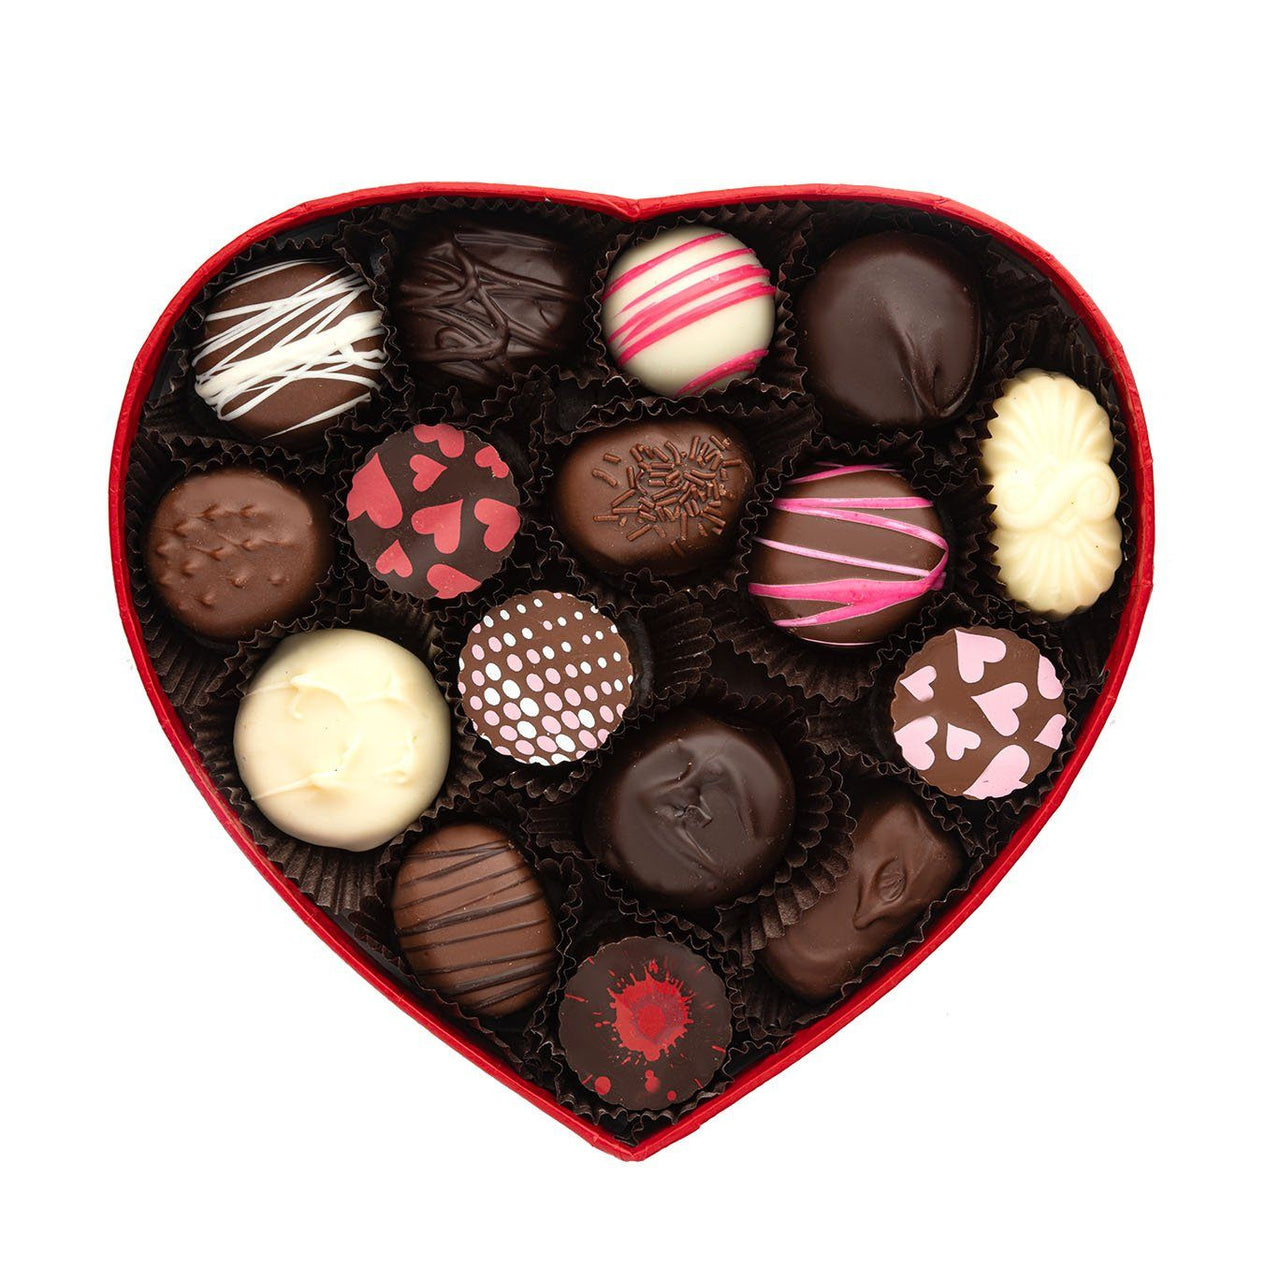 Valentine Heart Chocolate Assortment (4392217739379) (4654196916339) (4656590487667)